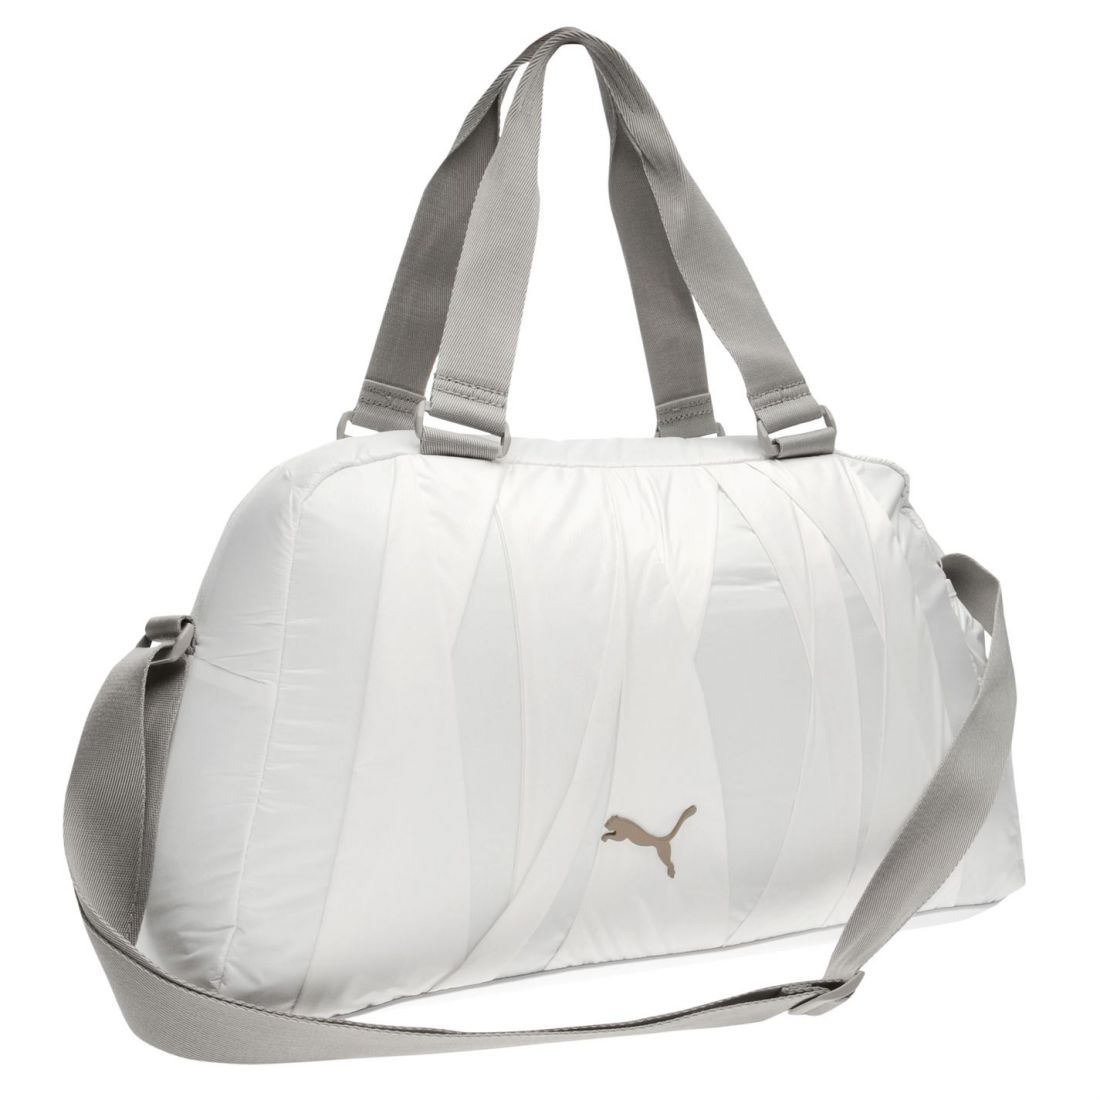 8d042714c19 Image is loading Puma-Womens-En-Pointe-Sports-Bag-Holdall-Lightweight-